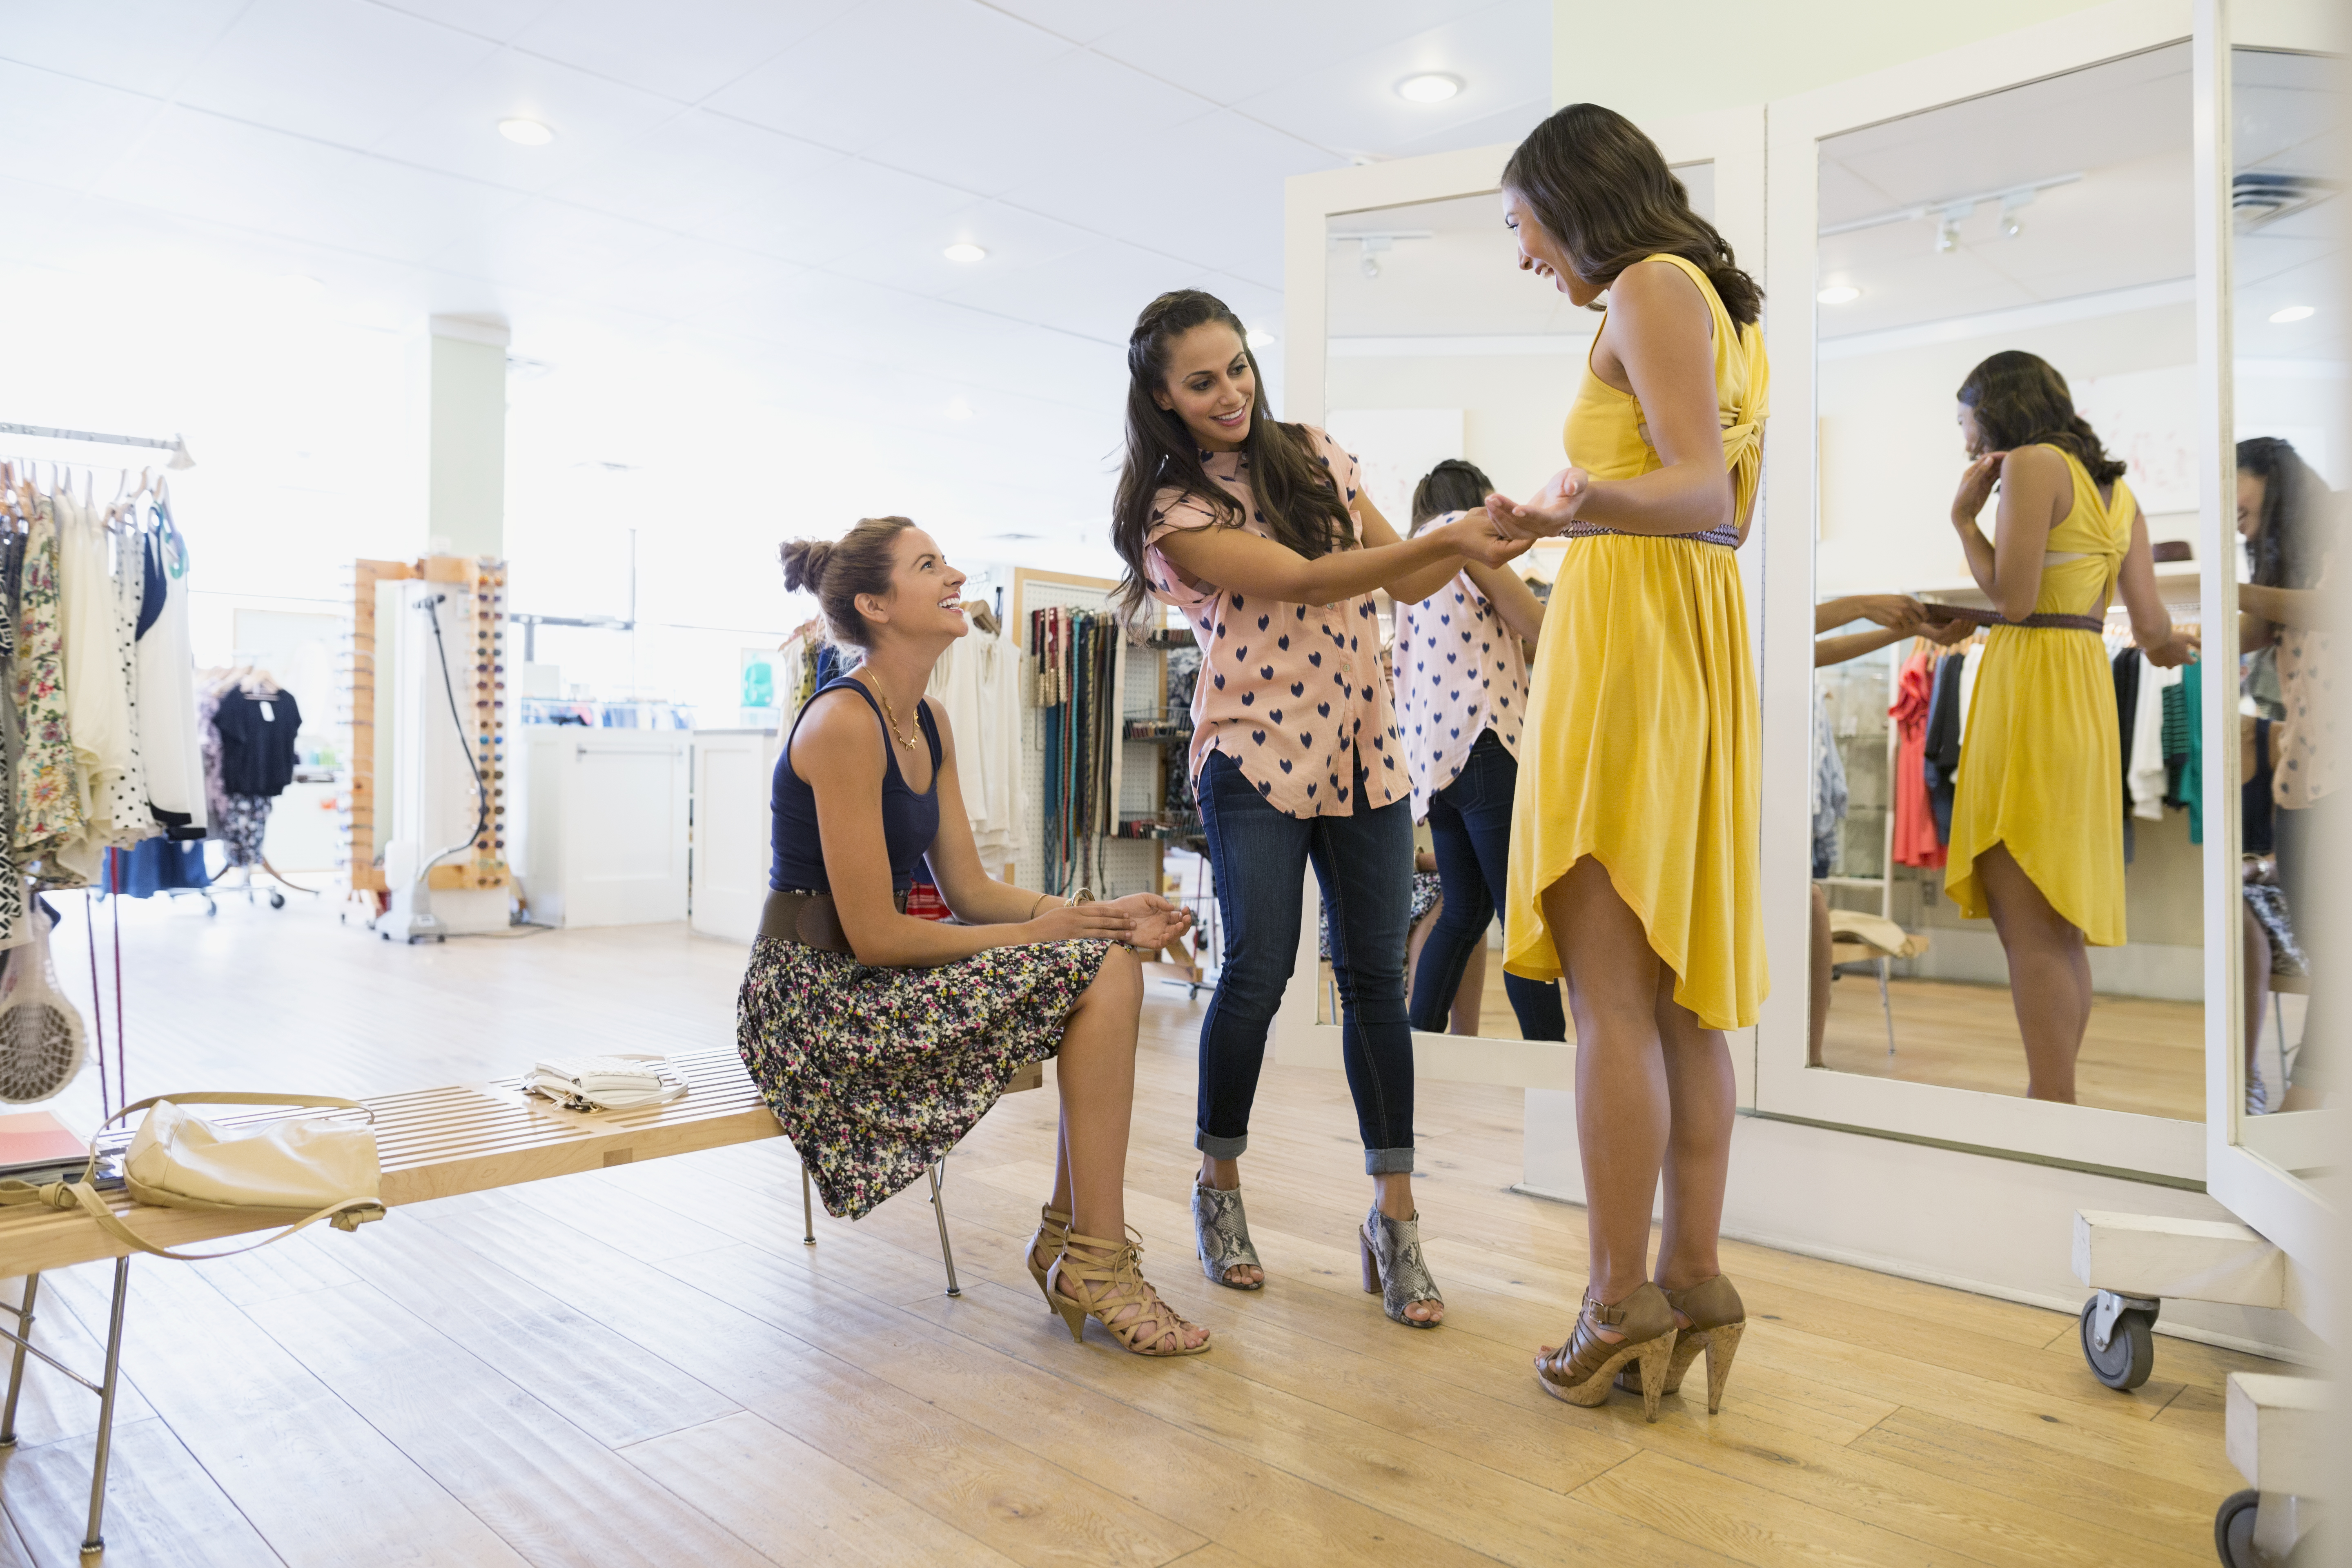 Woman trying on dress in clothing shop